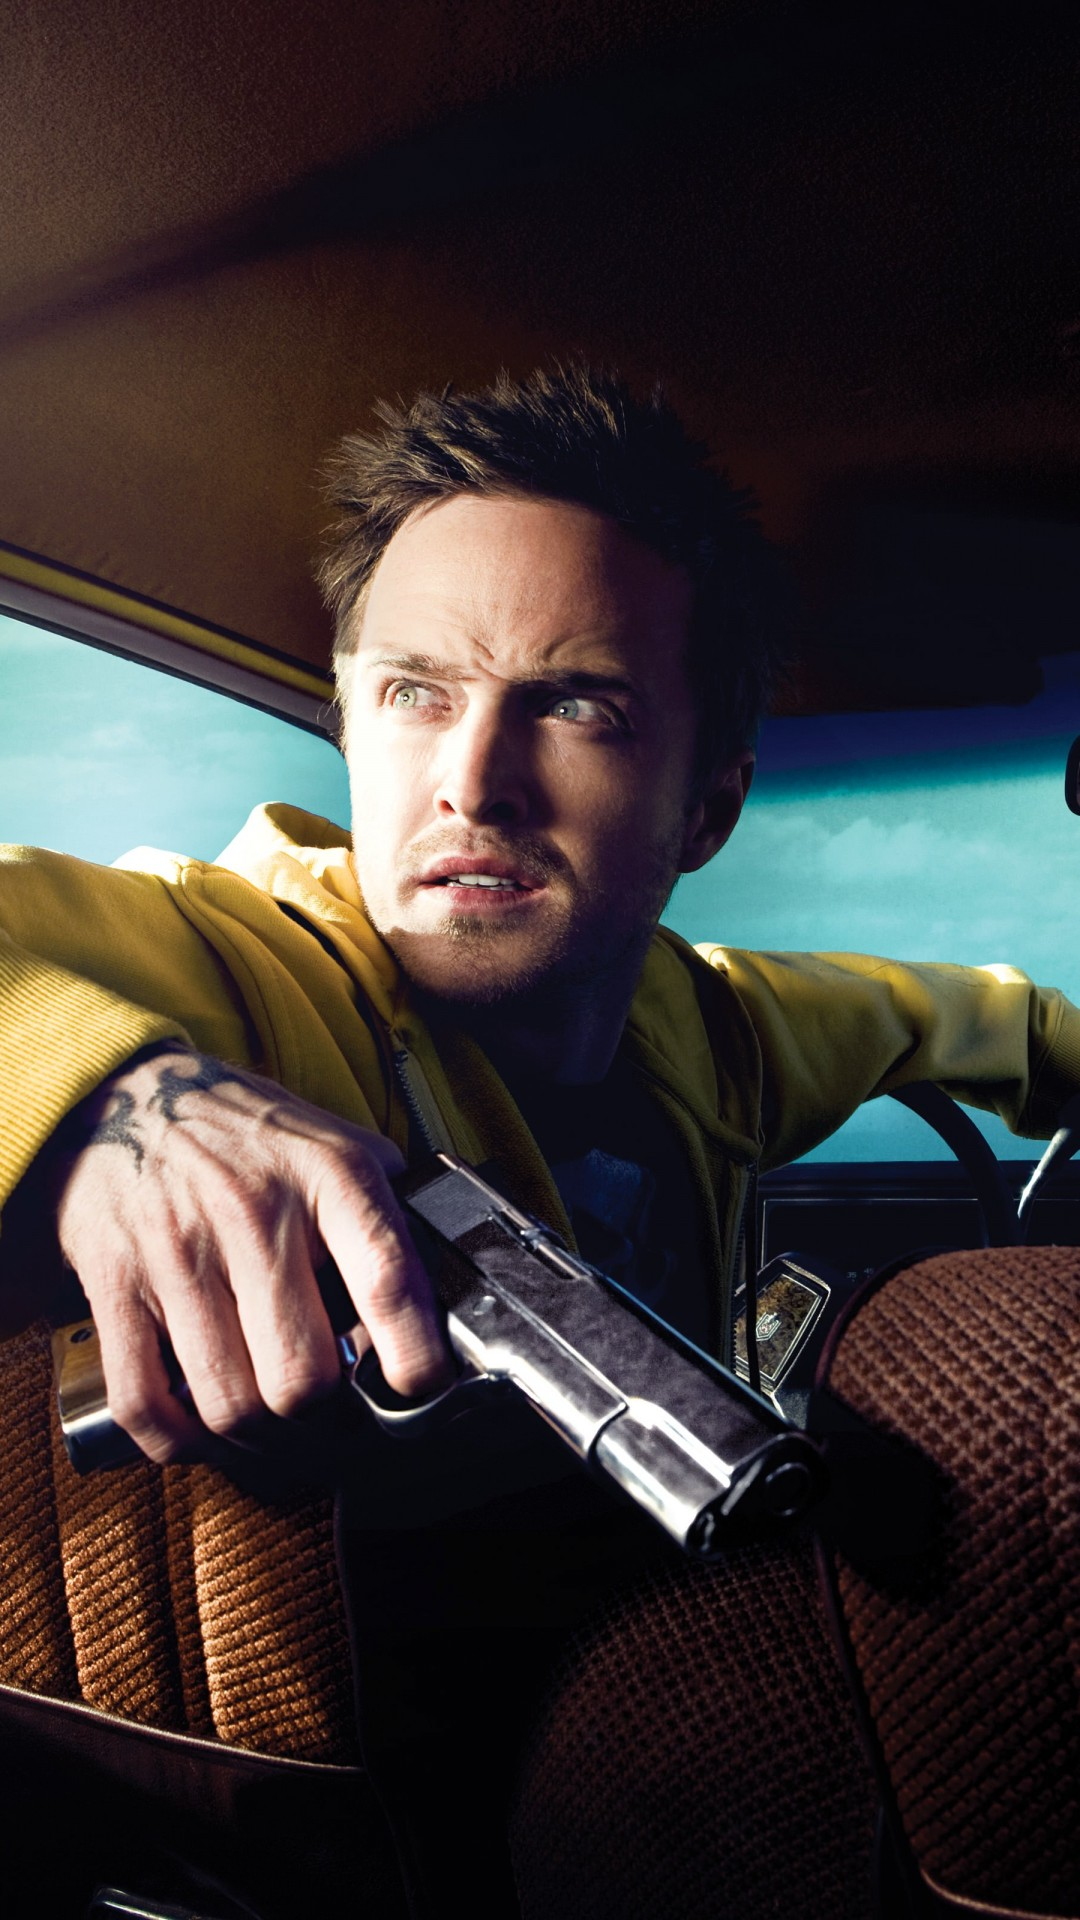 Breaking Bad - Jesse Pinkman & Walter White Wallpaper for SONY Xperia Z3